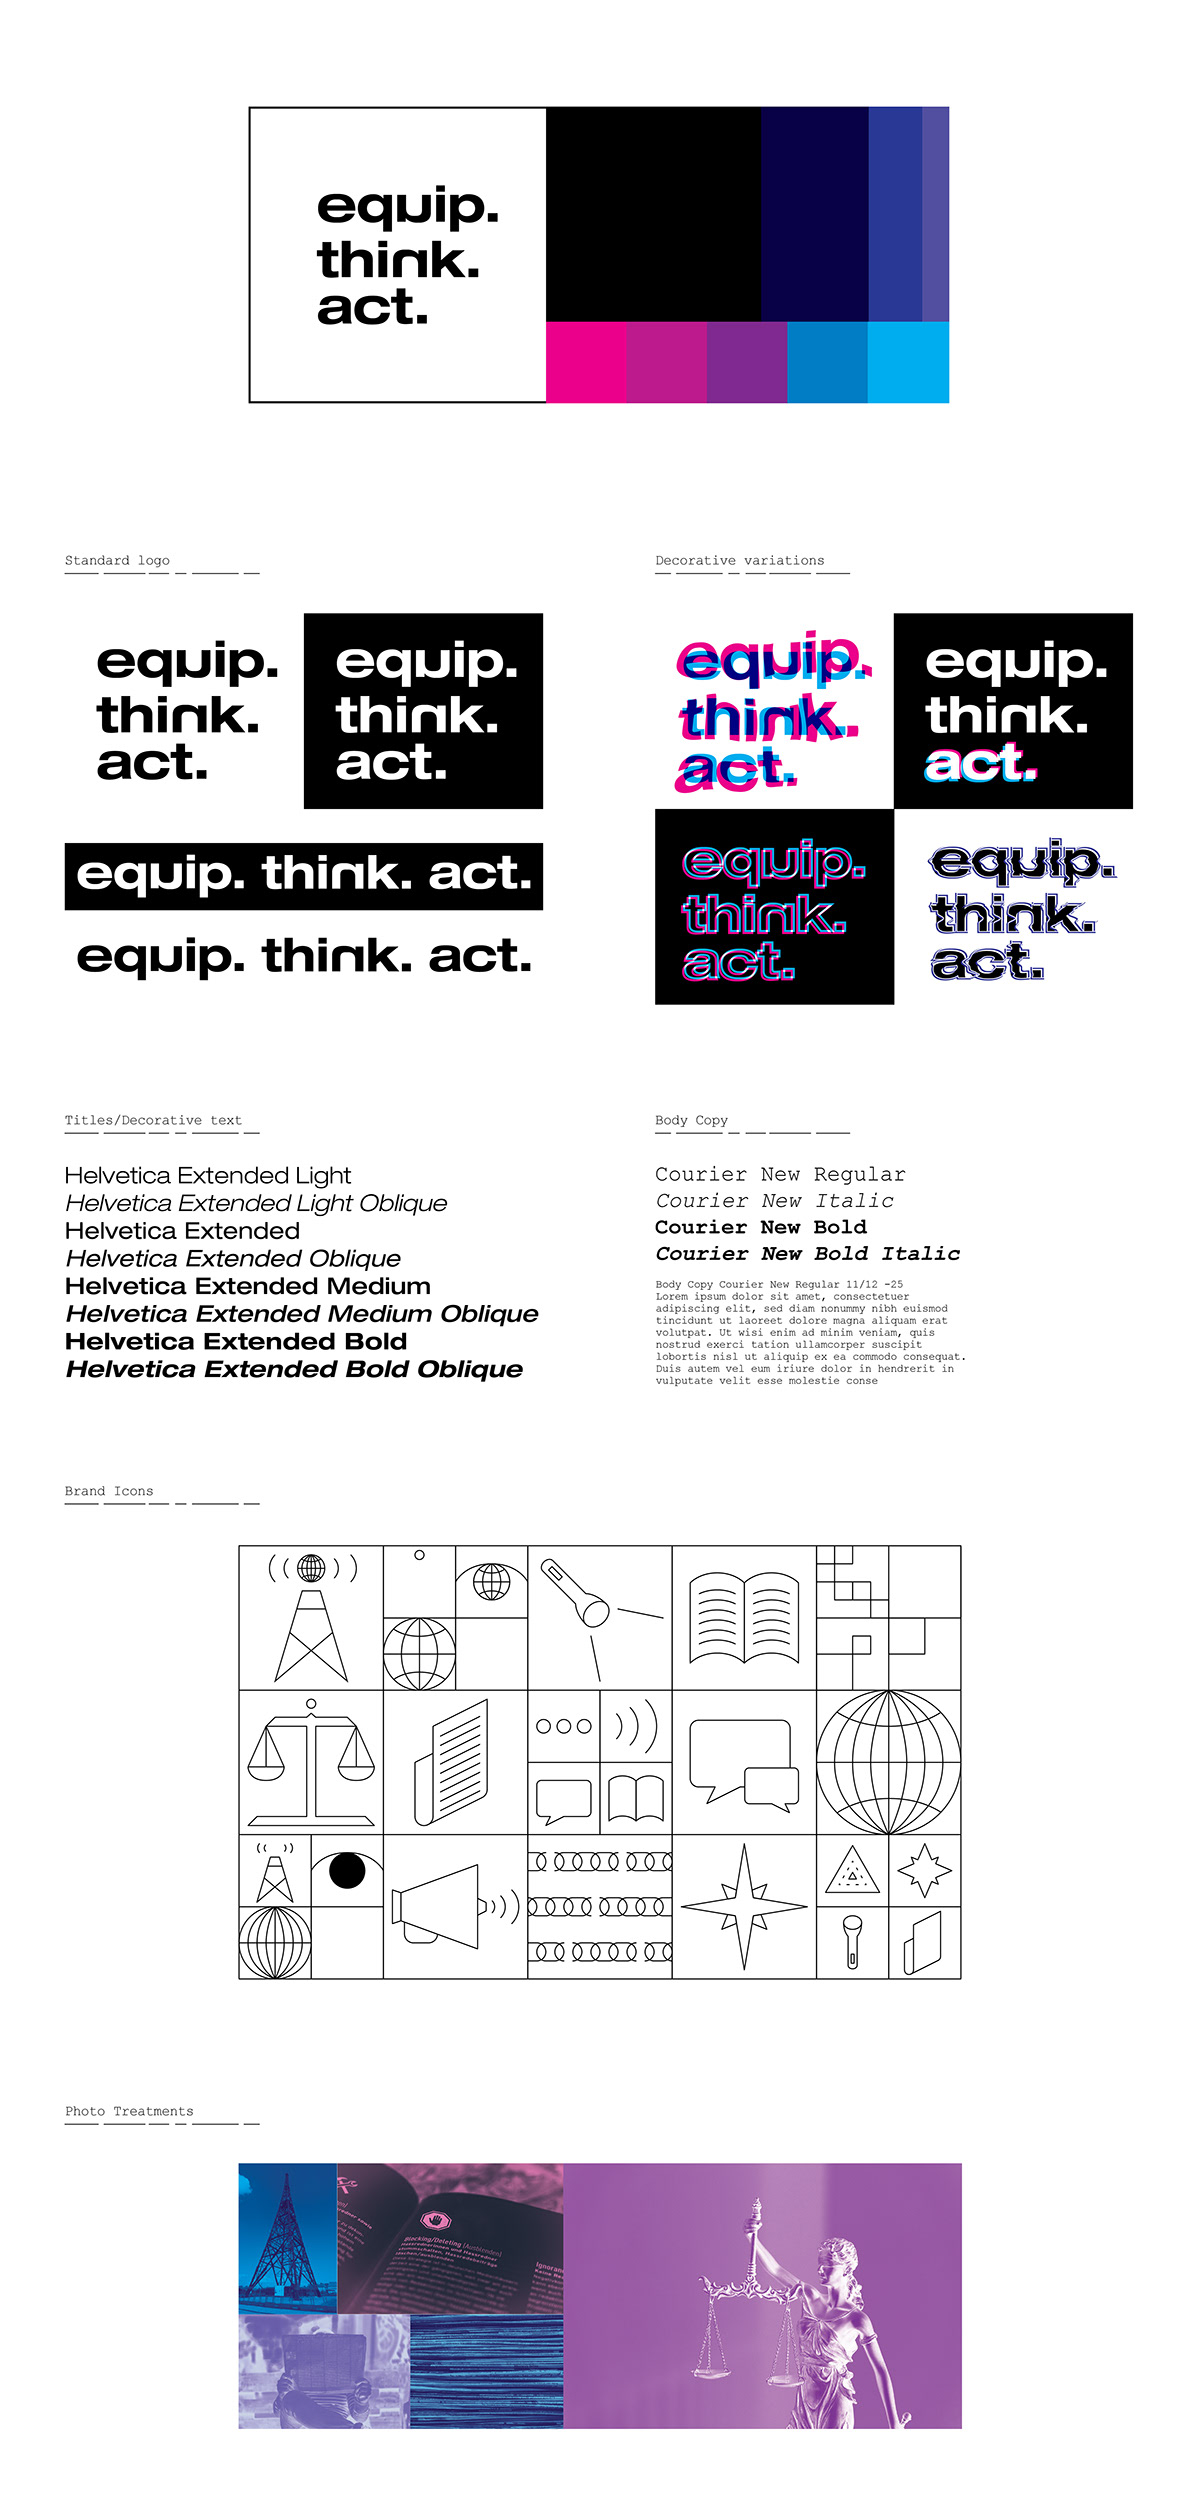 Awareness campaign branding  campaign Capstone project Education fake news melbourne designer misinformation tech youth